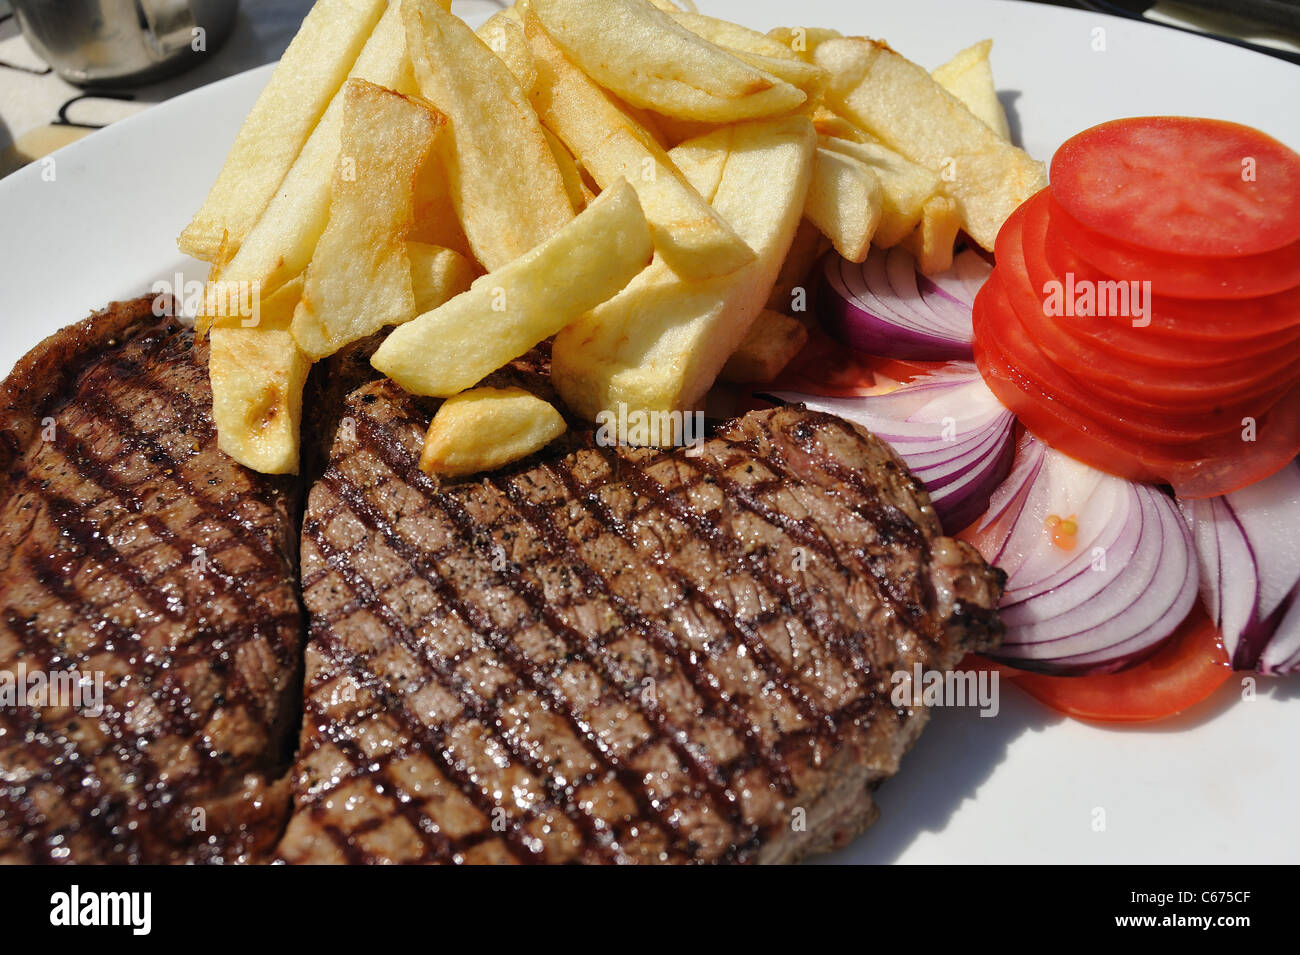 Steak chips onions and tomatoes - Stock Image